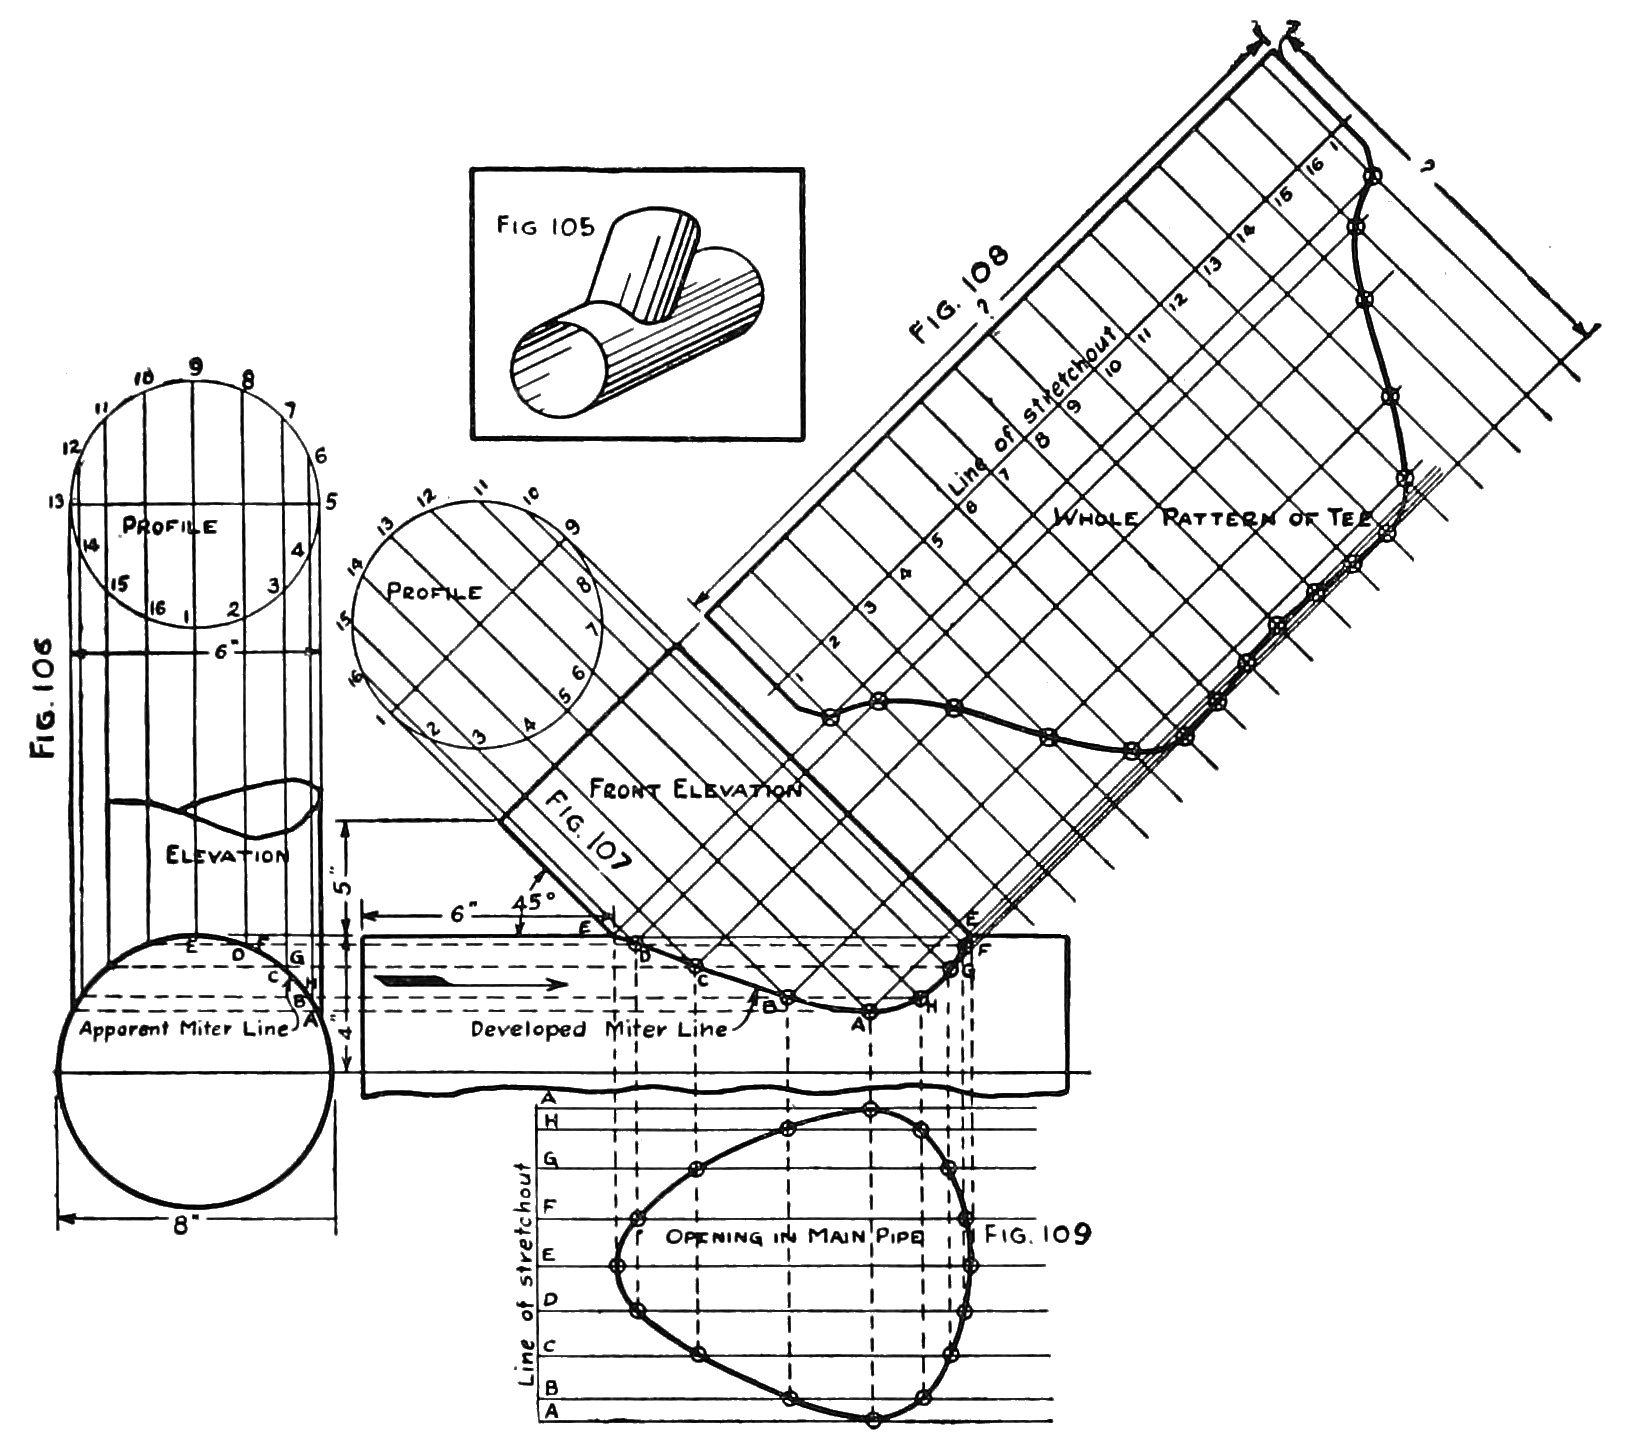 Pipe Drawing At Free For Personal Use Piping Schematic 1625x1444 Drawings Thermocouple Polarity 2001 Honda Accord Radio Code